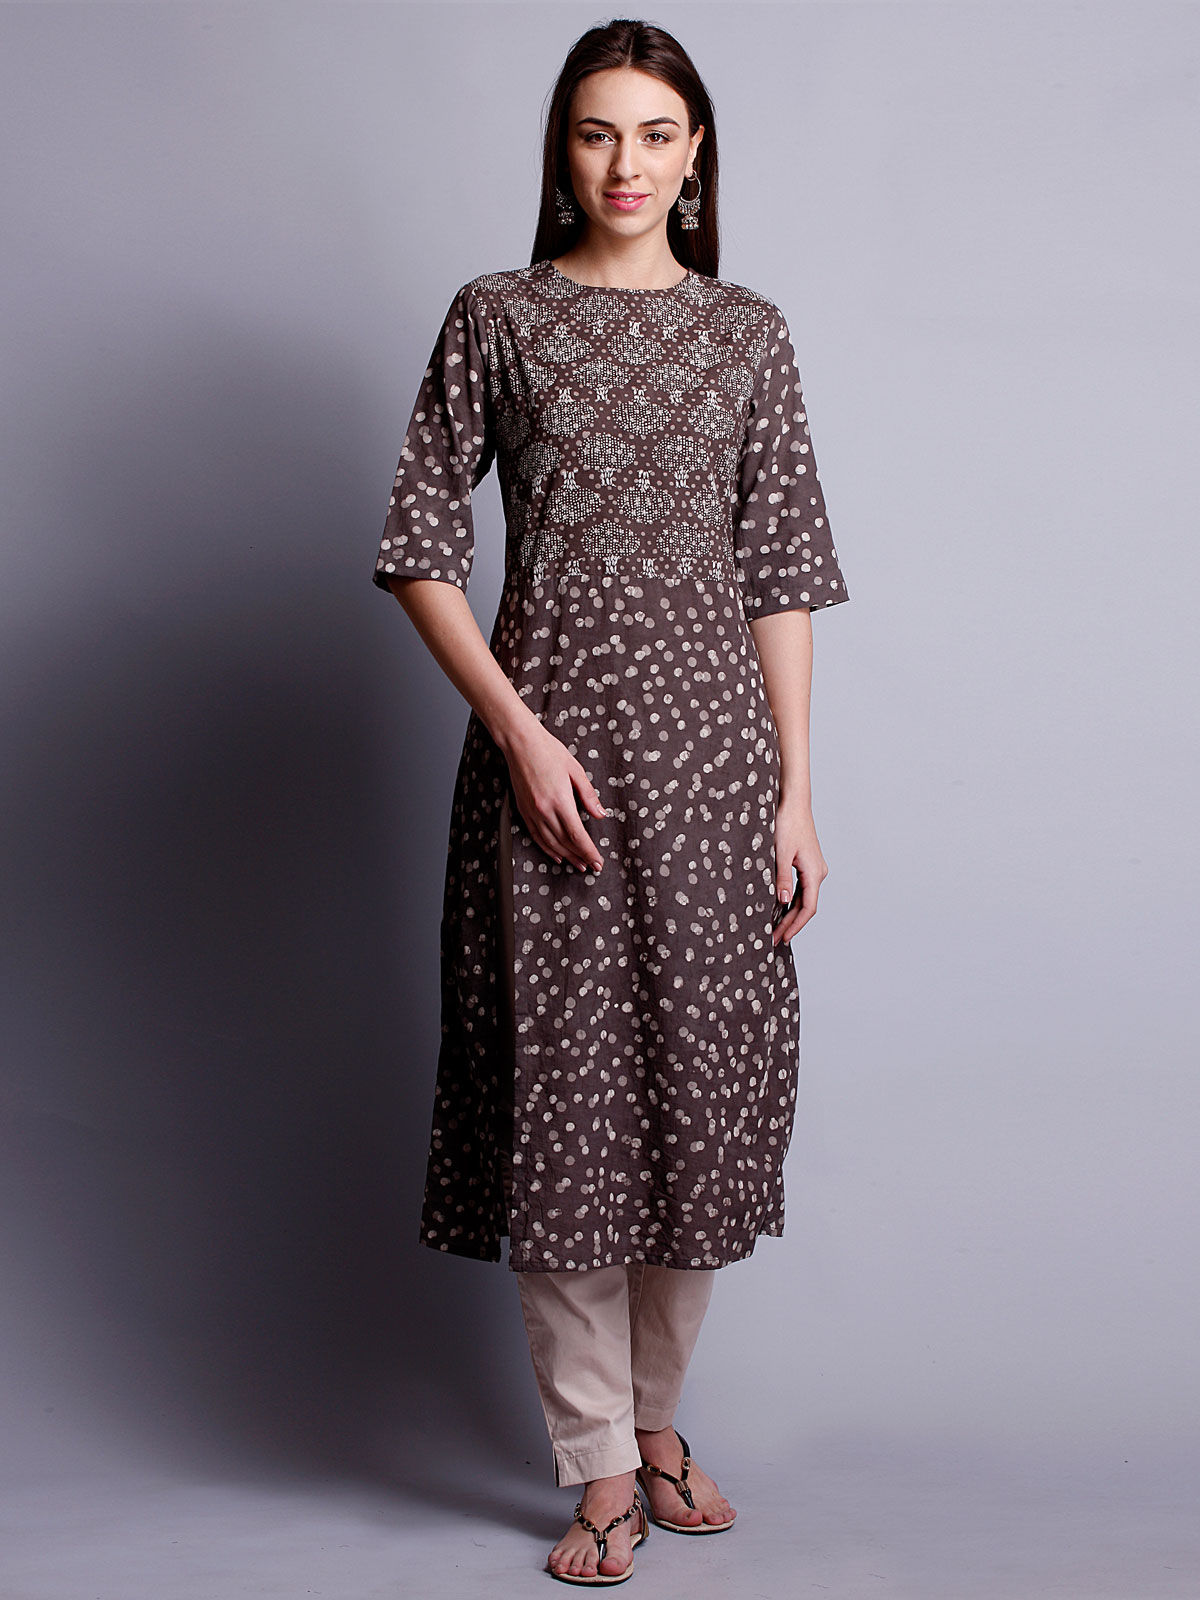 3/4th sleeves dark kashish color long kurta